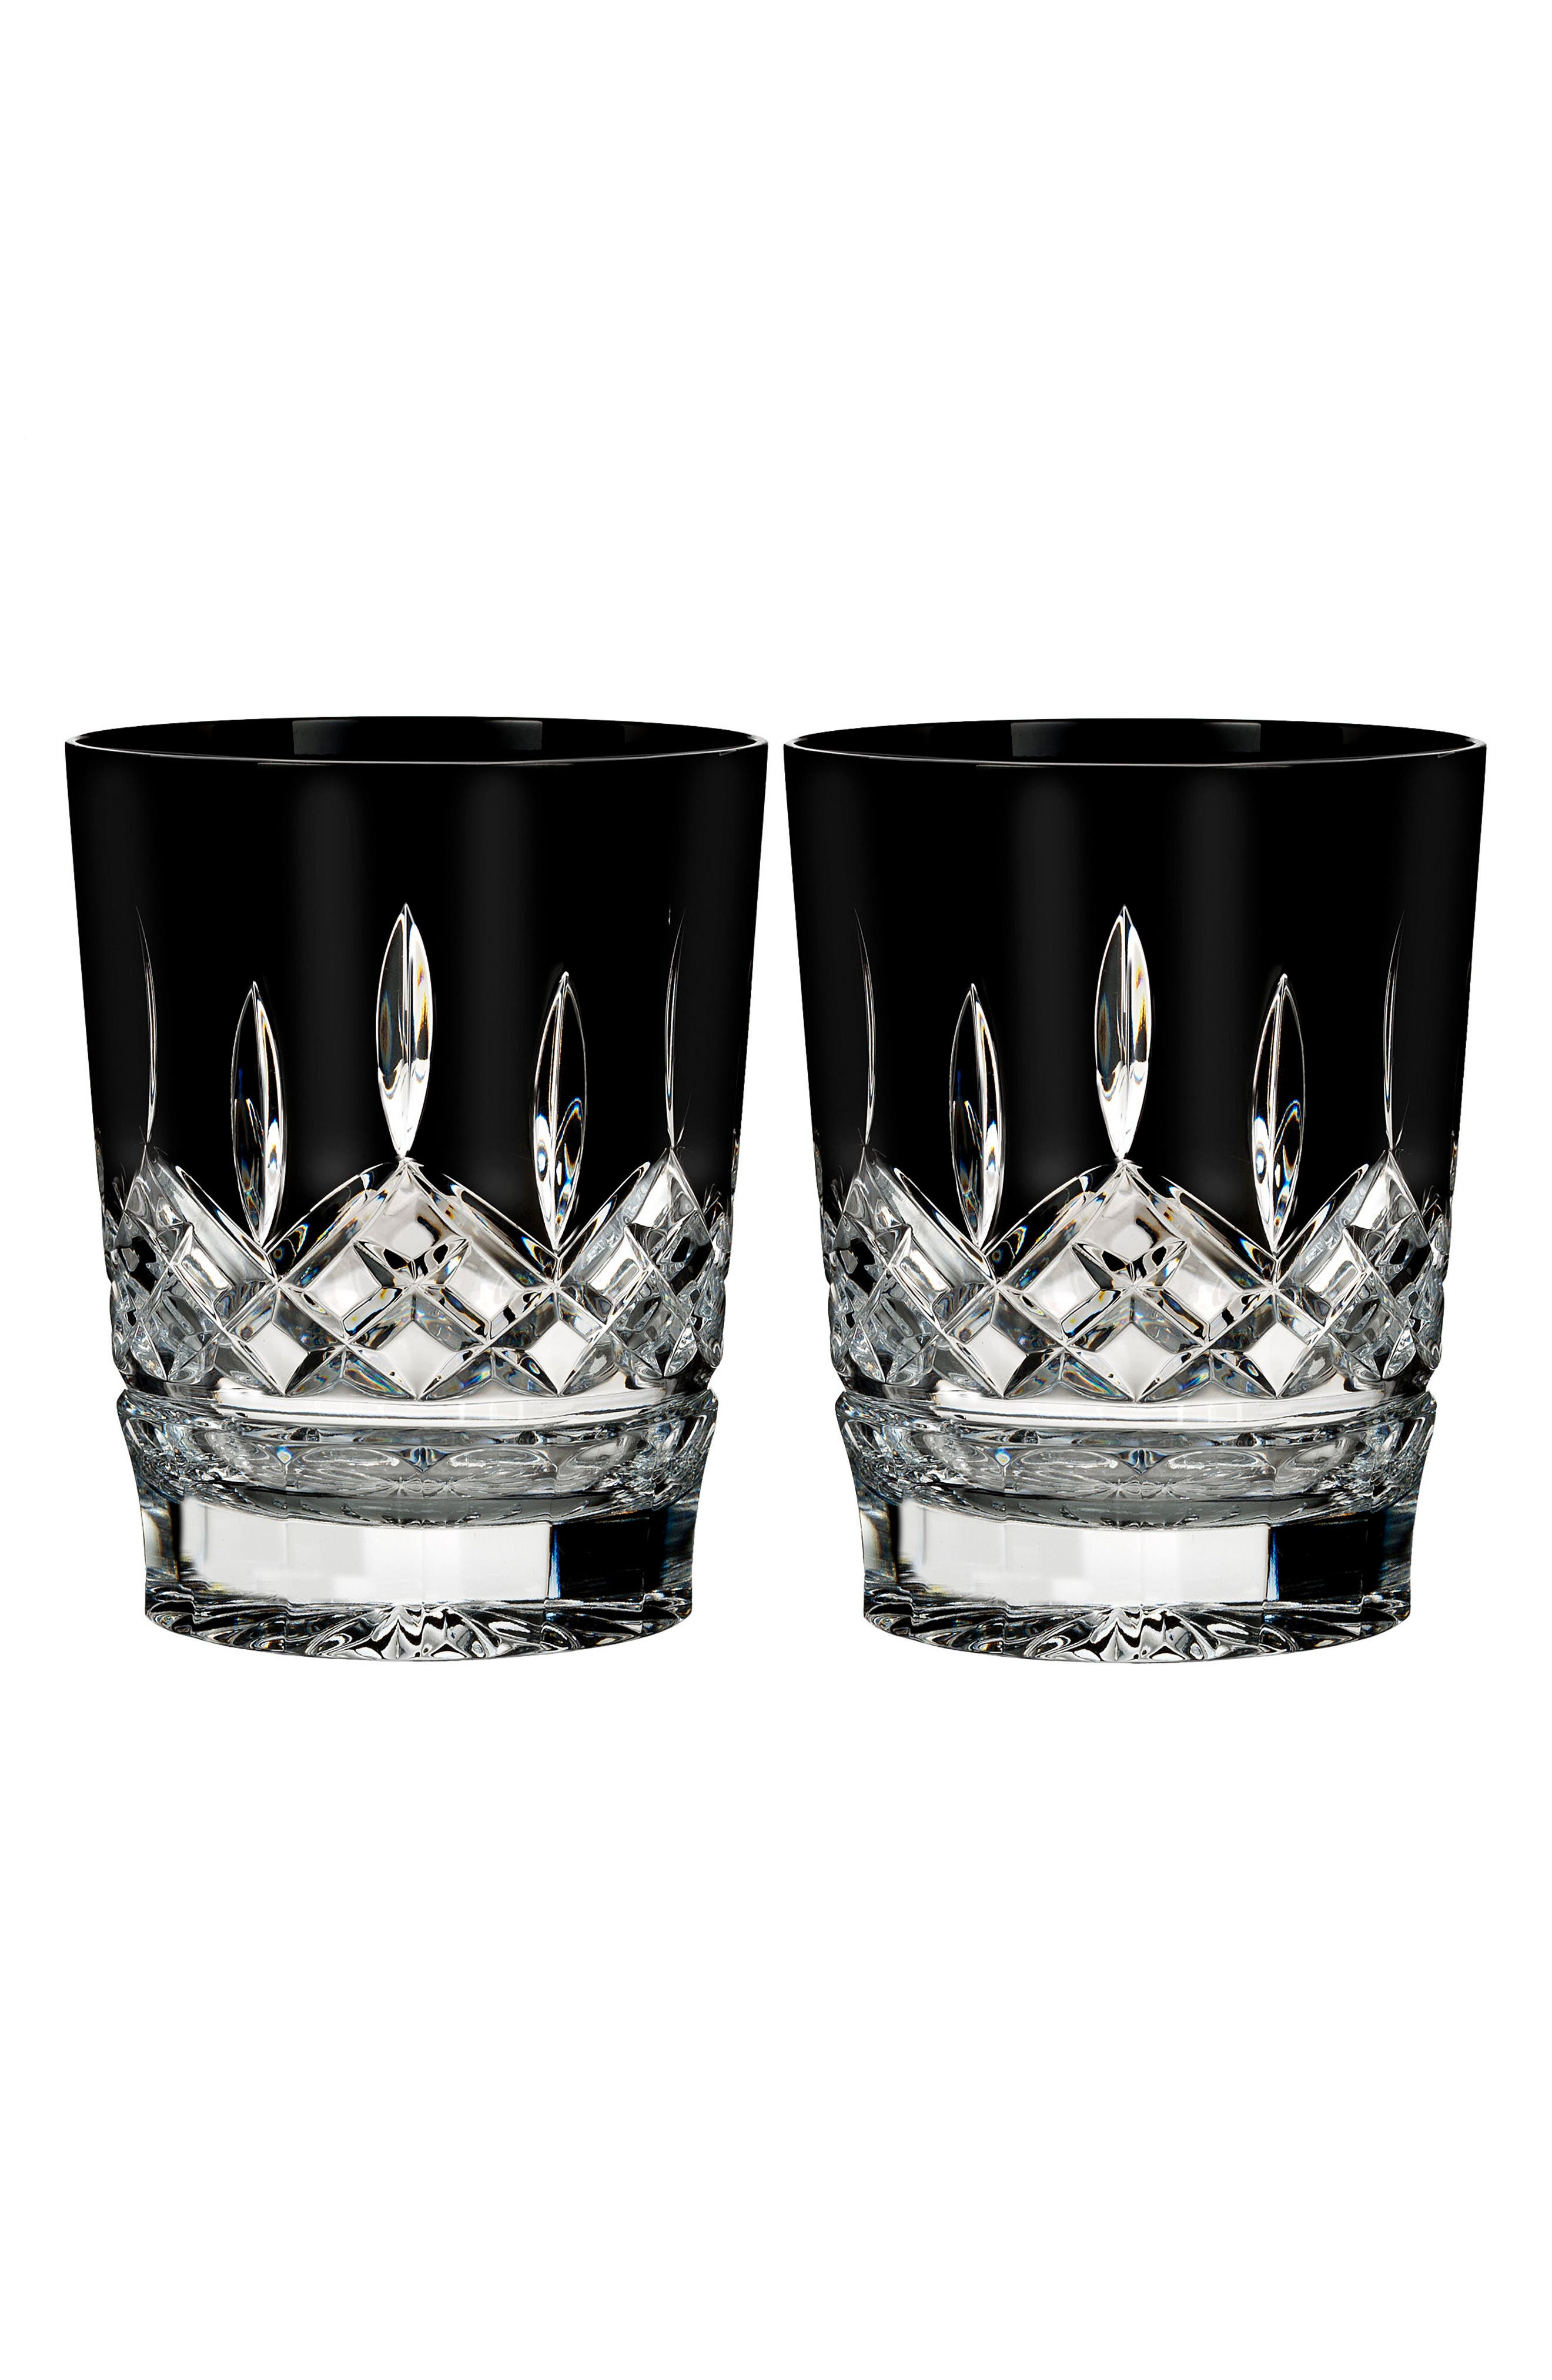 Lismore Diamond Set of 2 Black Lead Crystal Double Old Fashioned Glasses,                         Main,                         color, 001